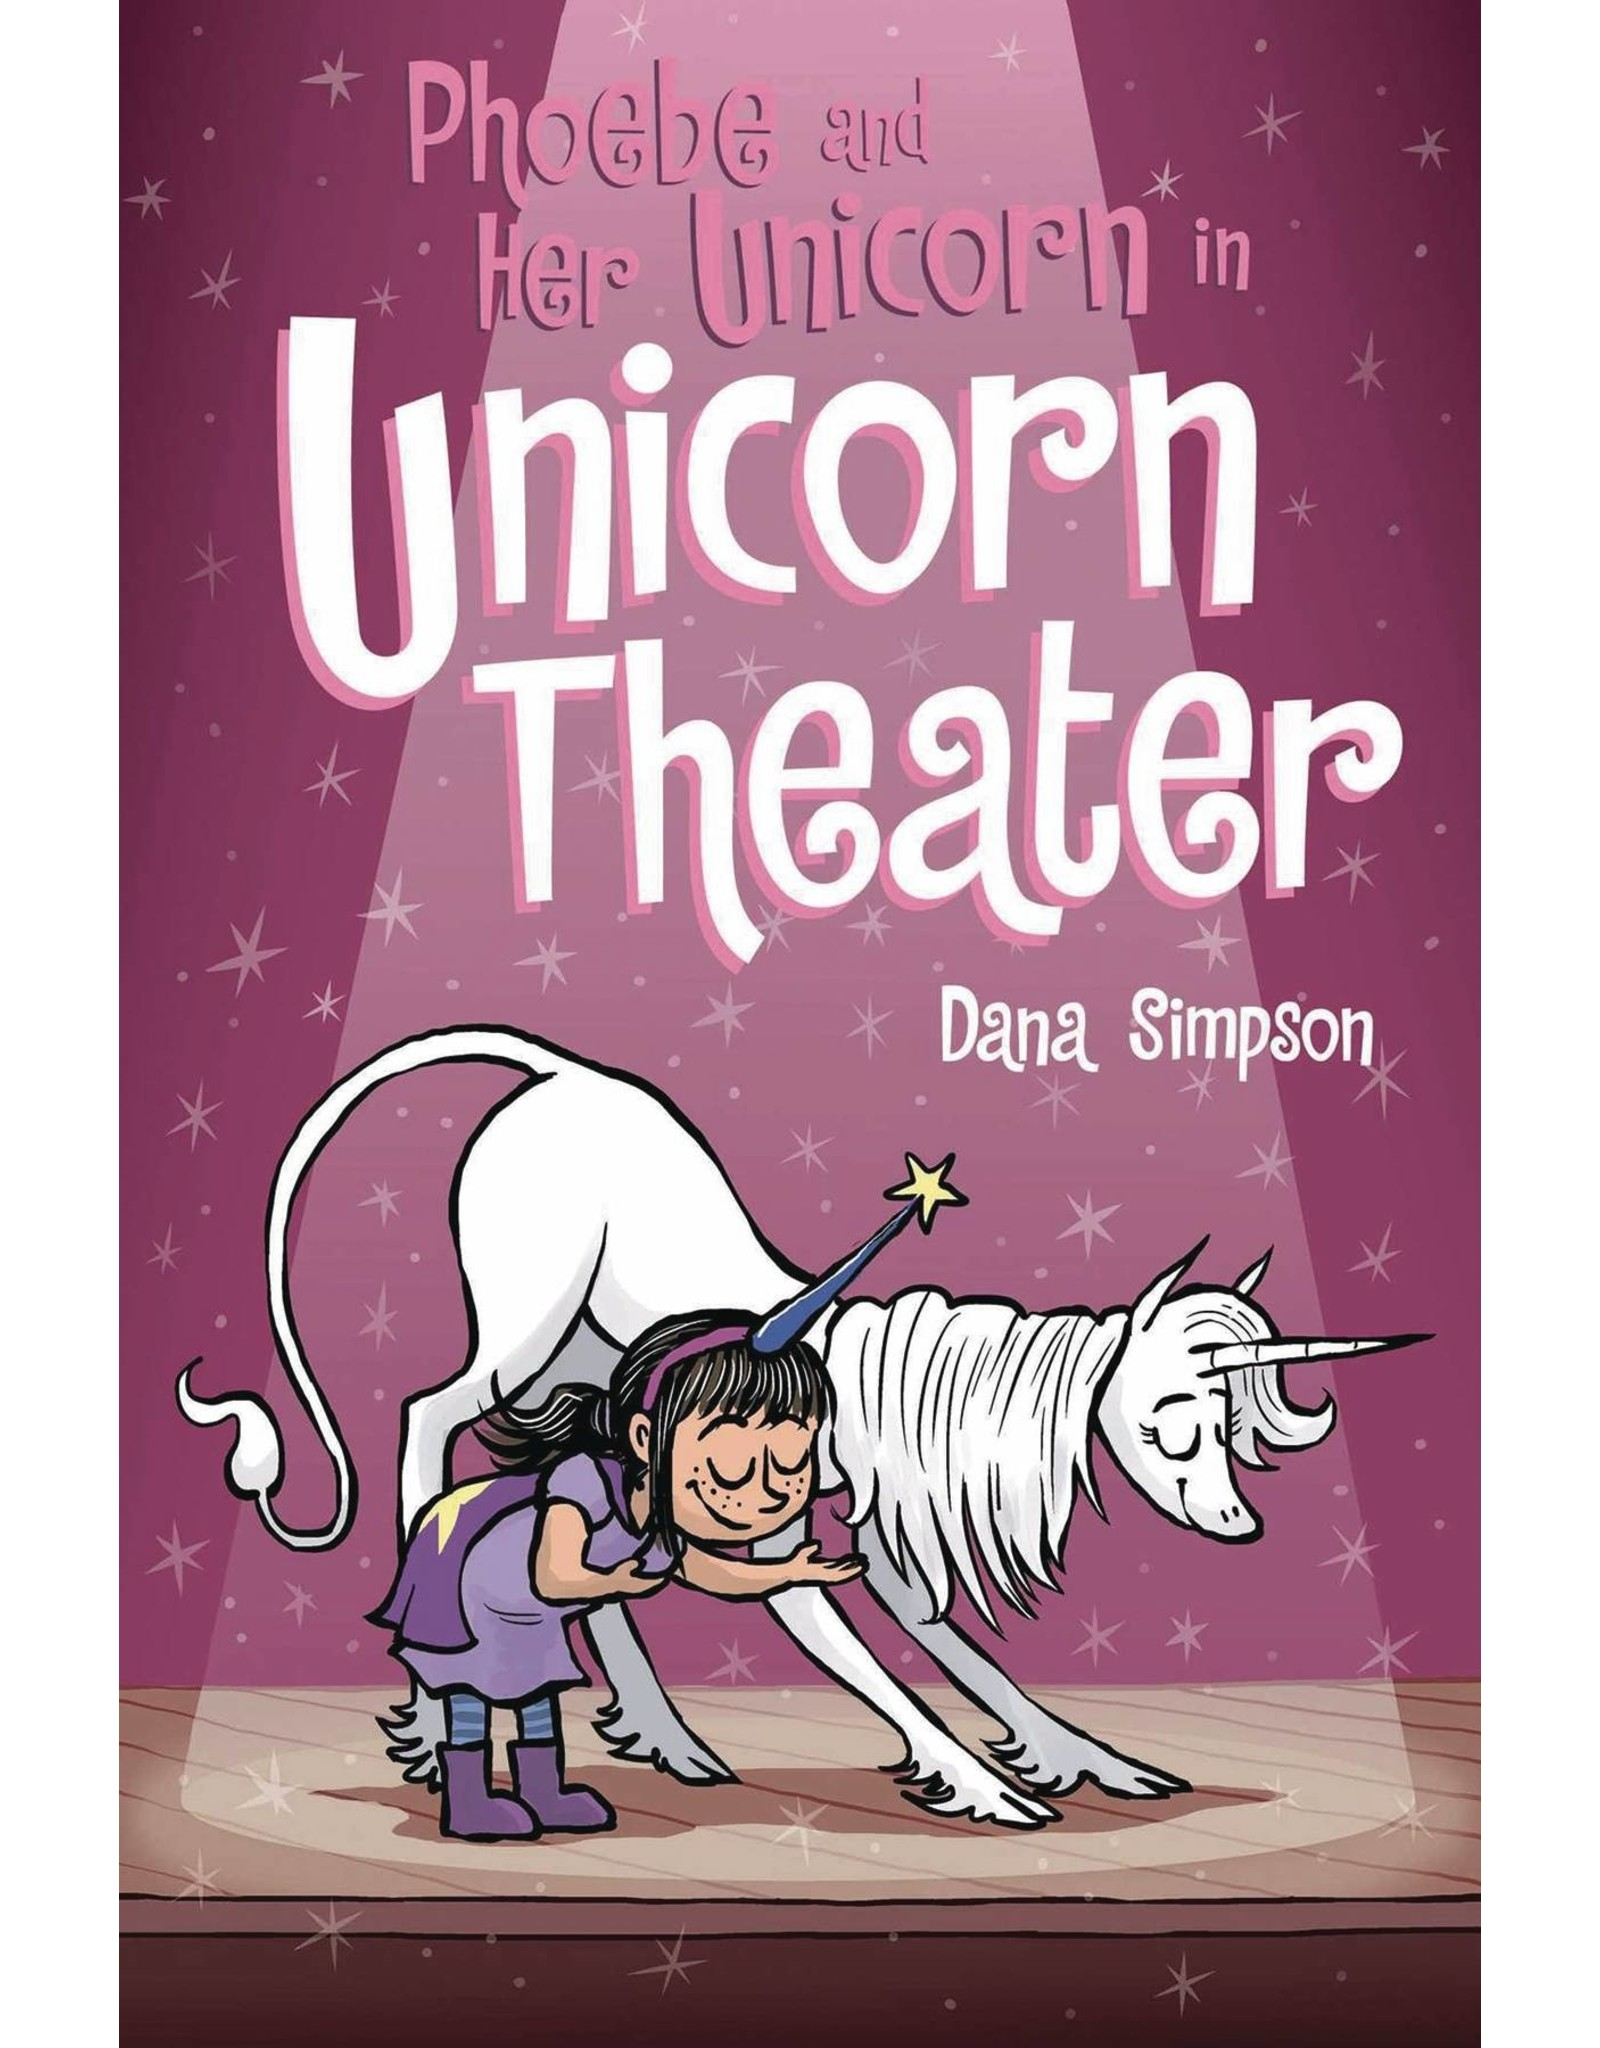 AMP! COMICS FOR KIDS PHOEBE AND HER UNICORN GN VOL 08 IN UNICORN THEATER